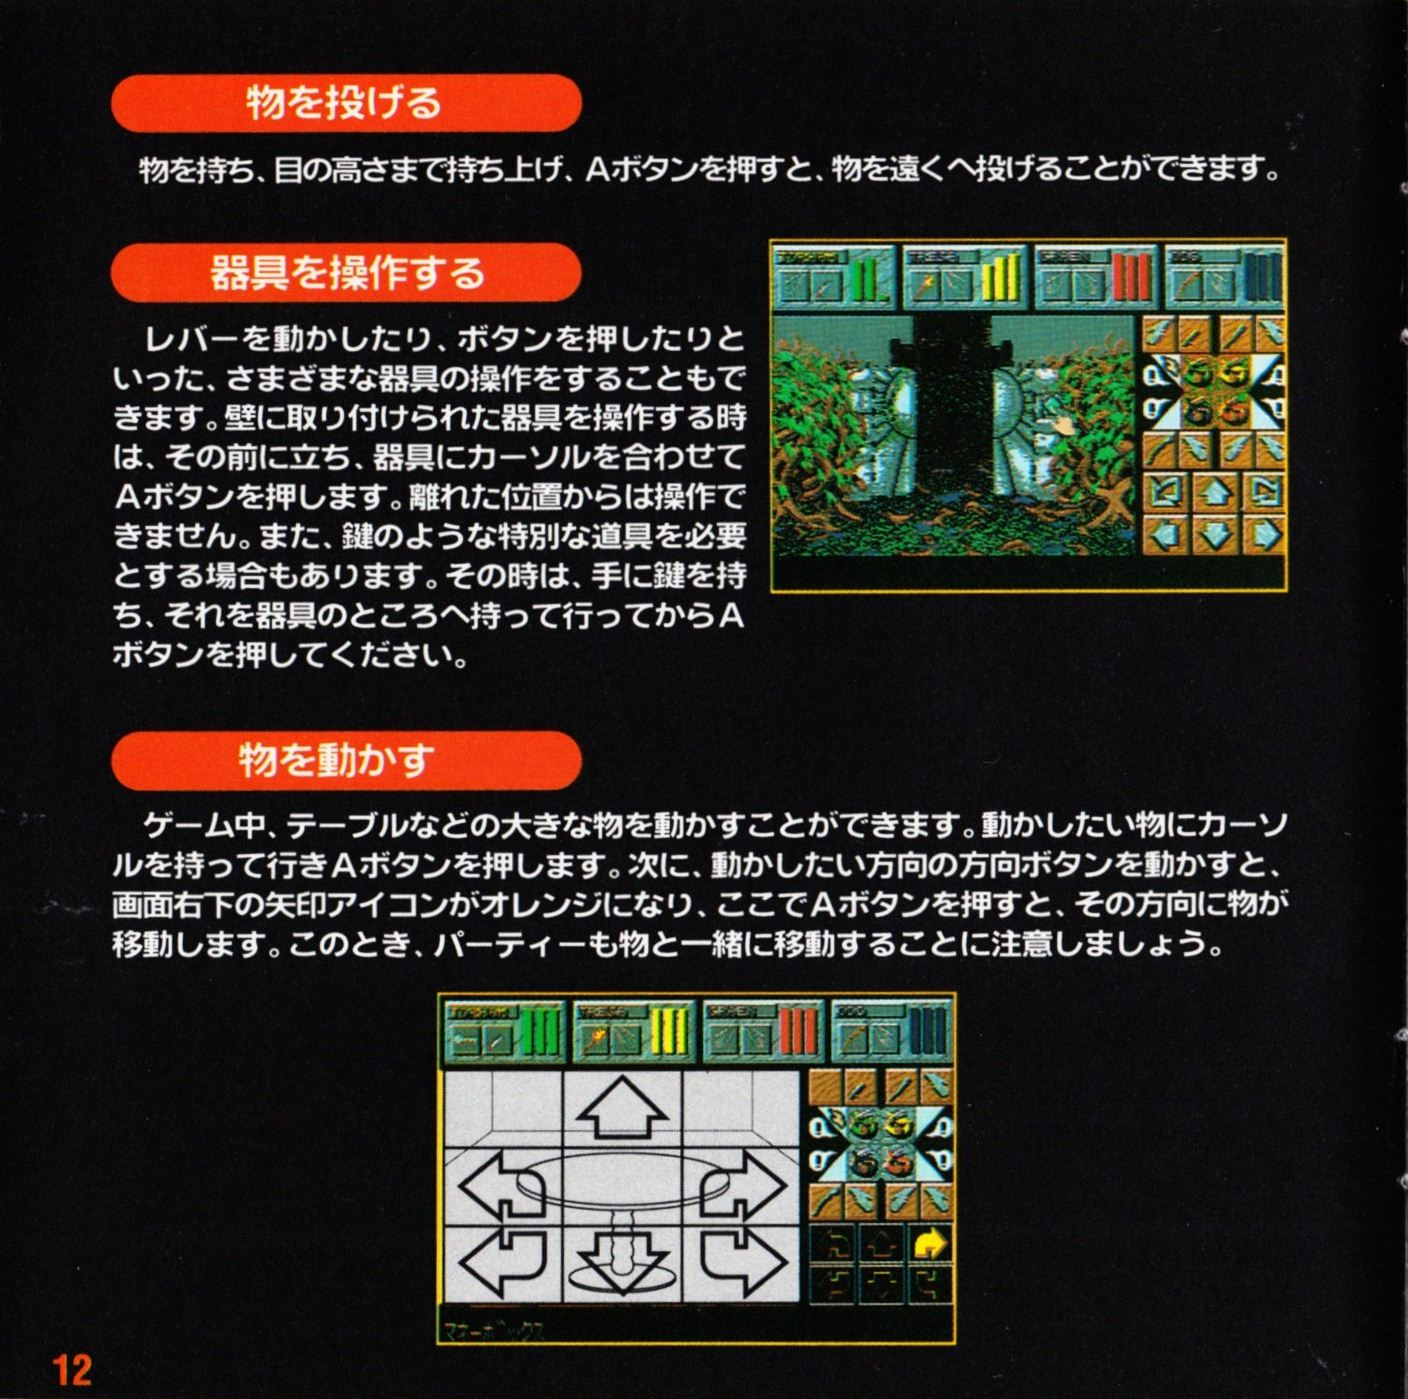 Game - Dungeon Master II - JP - Mega CD - Booklet - Page 014 - Scan